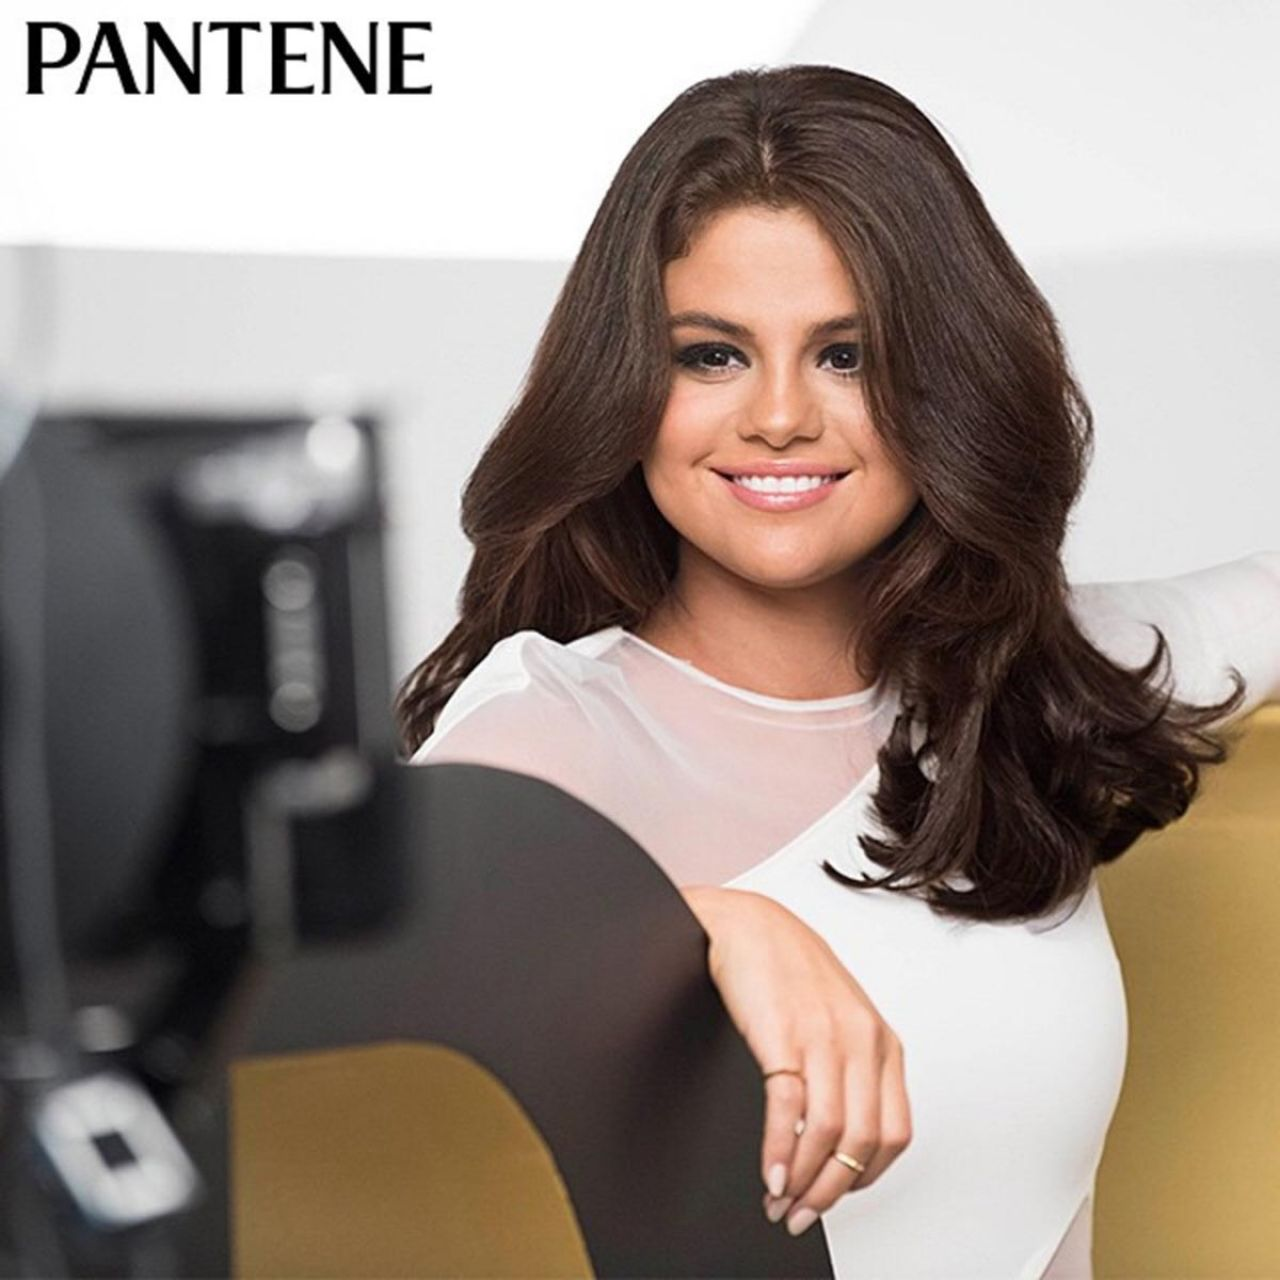 Selena Gomez Pantene Photoshoot June 2015